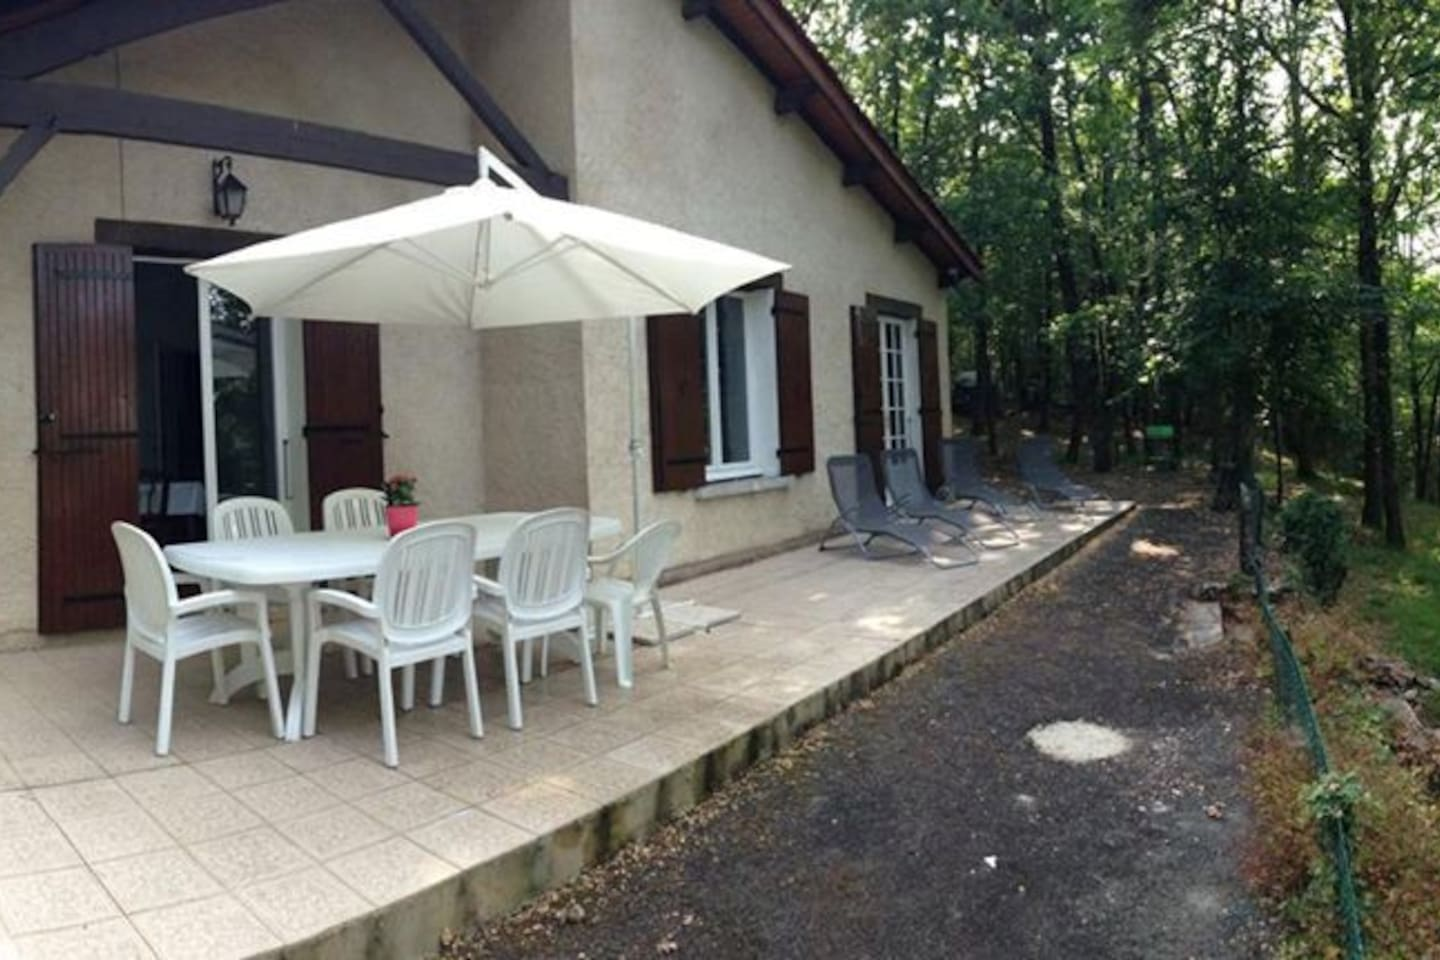 cozy cottage in the Perigord, view